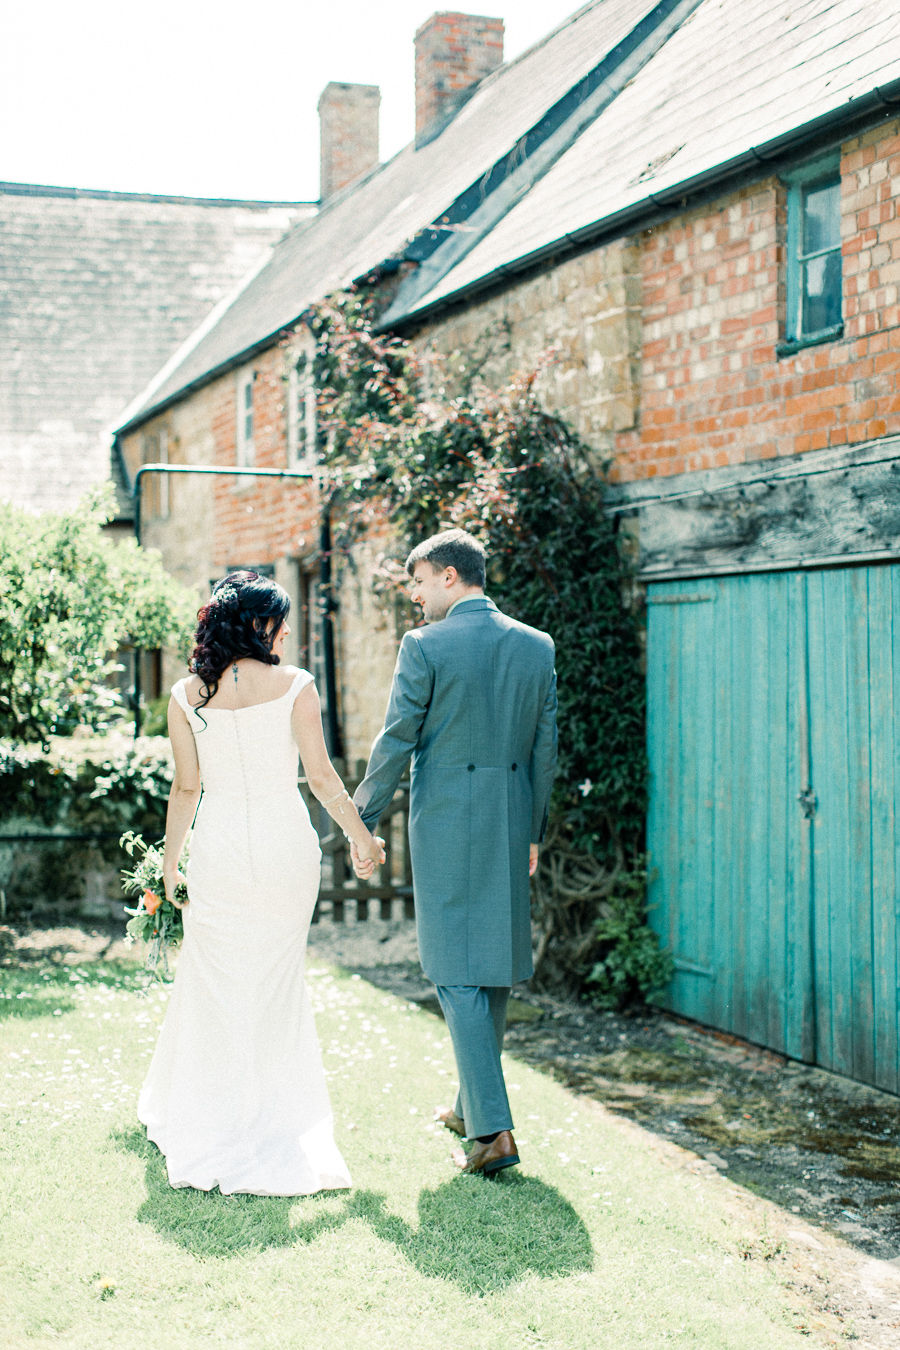 Jordans Courtyard rustic wedding styling ideas with images by Liz Baker Photography (32)